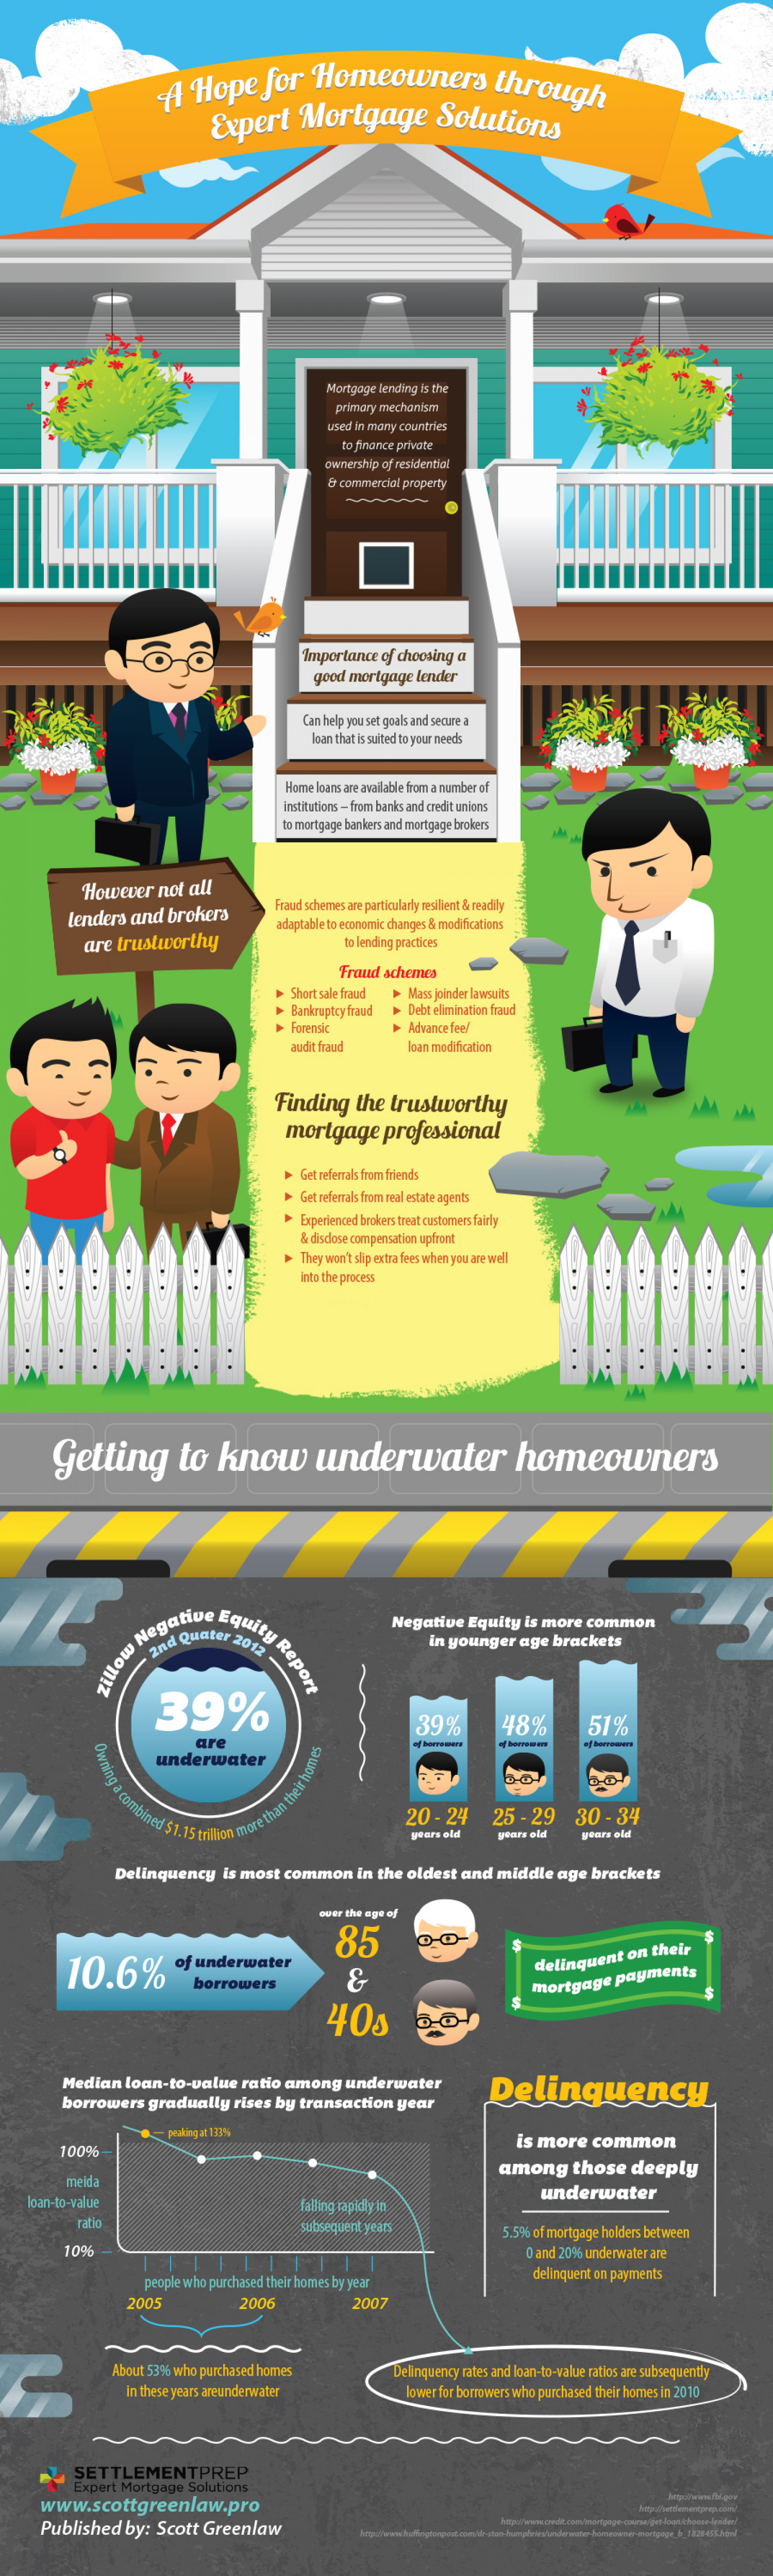 A Hope for Homeowners through Expert Mortgage Solutions Infographic